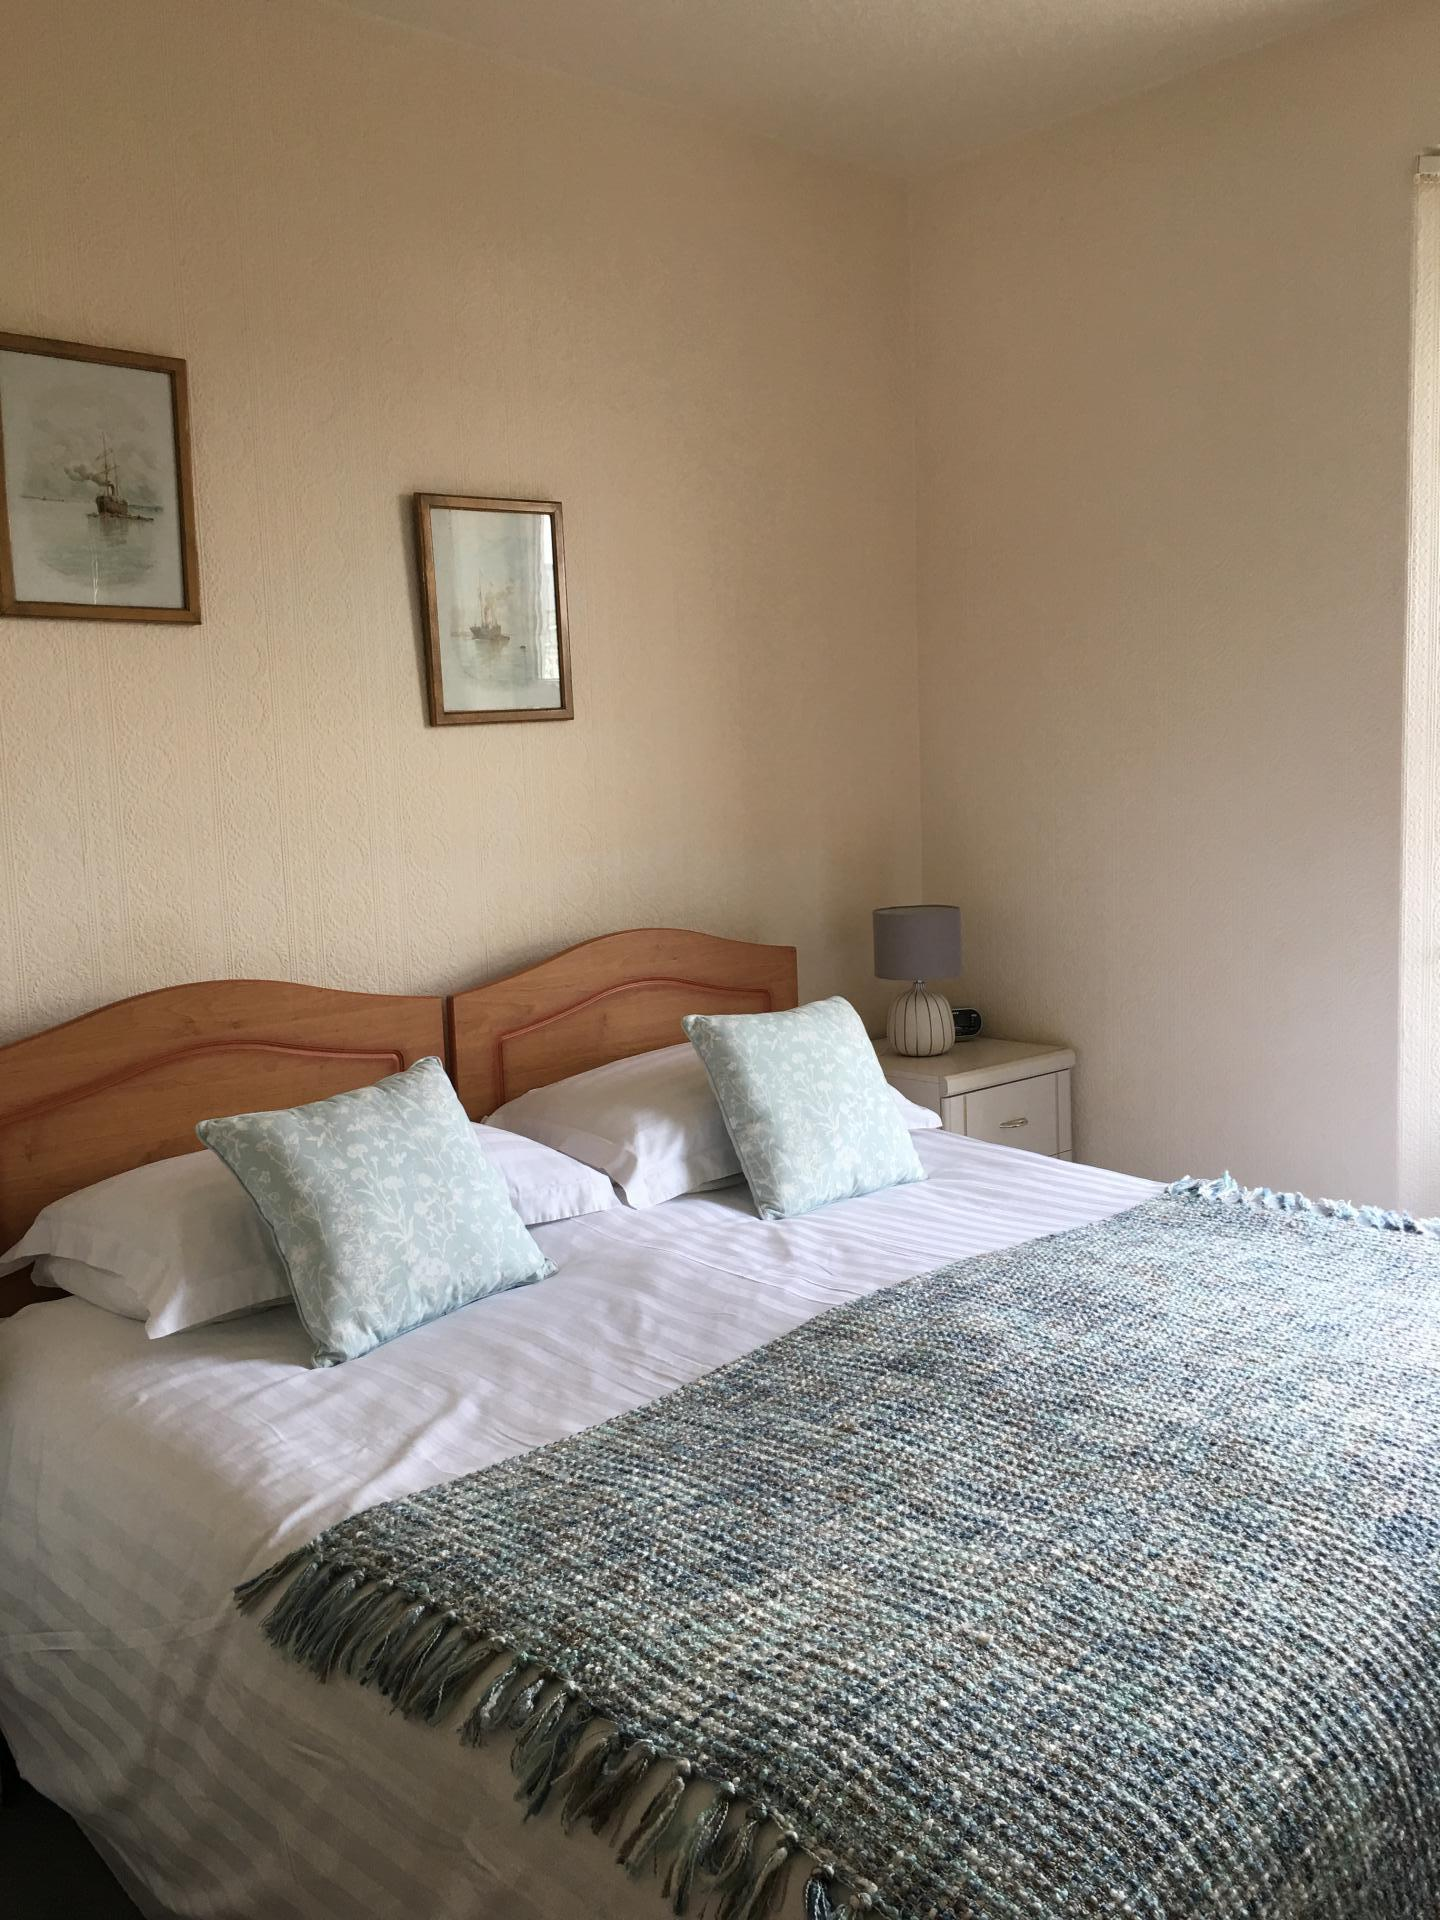 Room 1 - Standard Double Room With Superking Bed (inc breakfast)